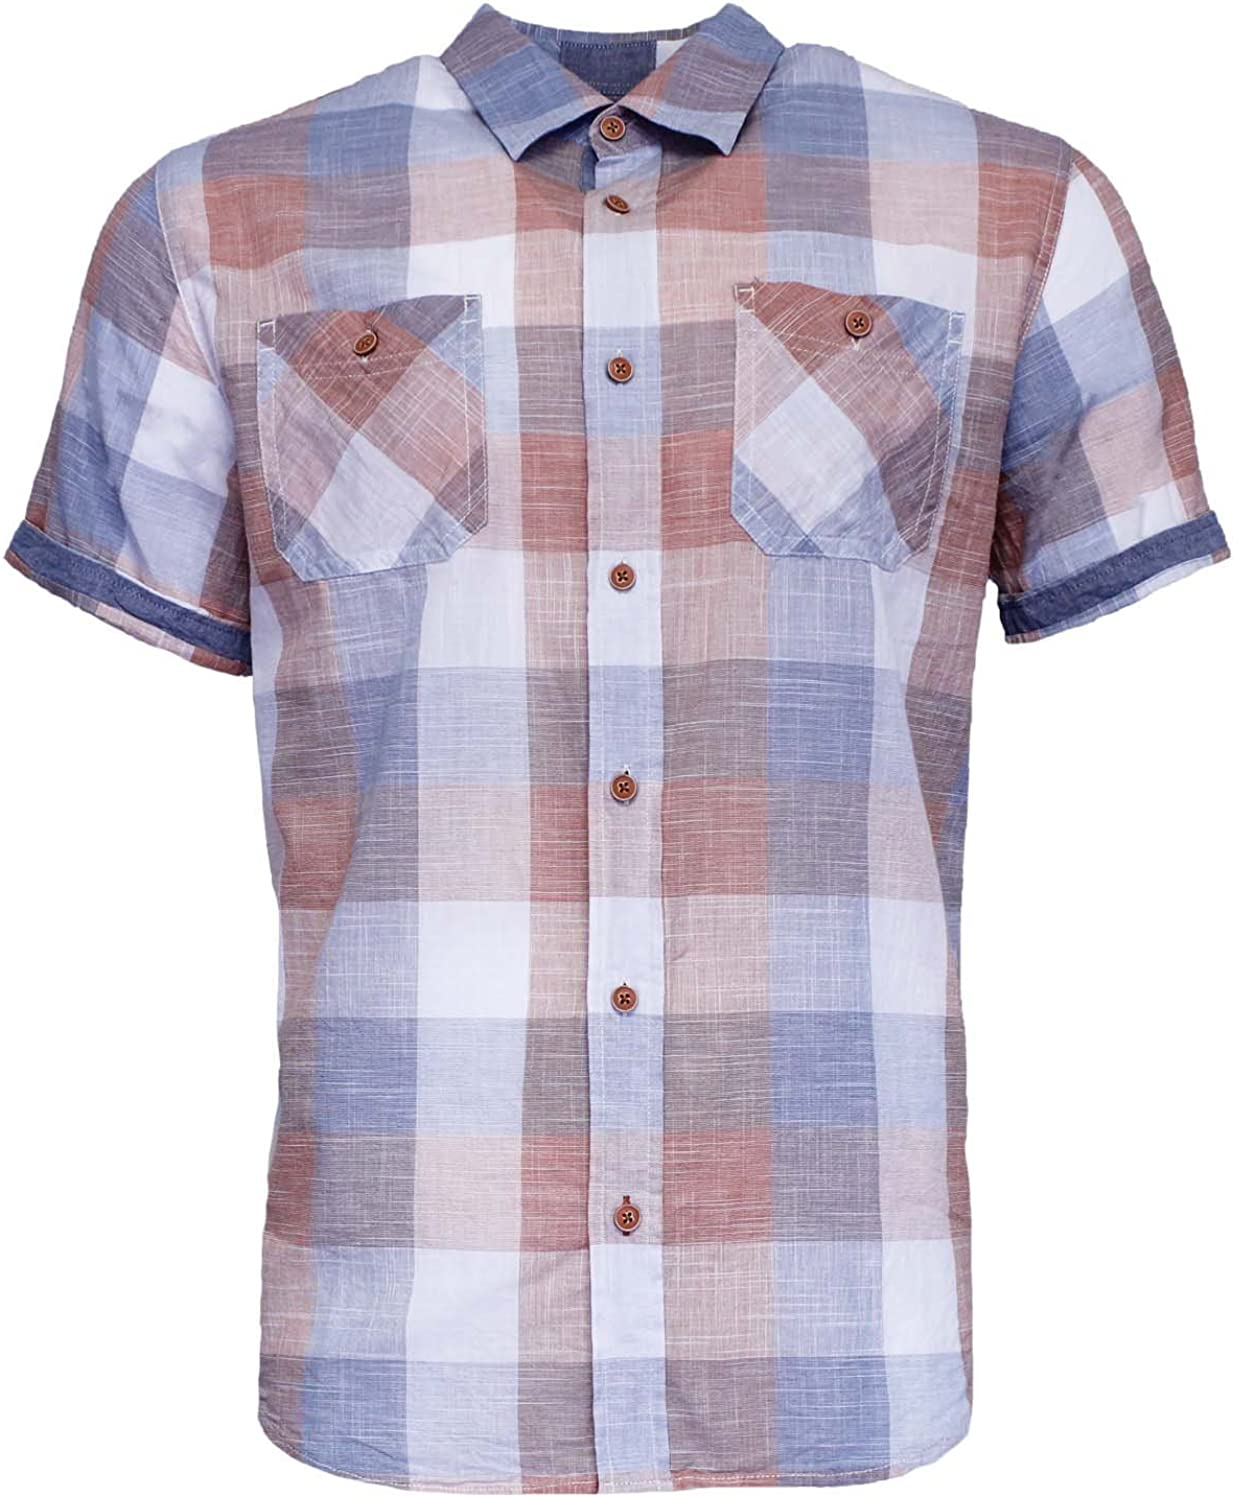 Mens Vintage Classic Woven Short Sleeve Button-Up Shirt (Small, Burnt Orange)